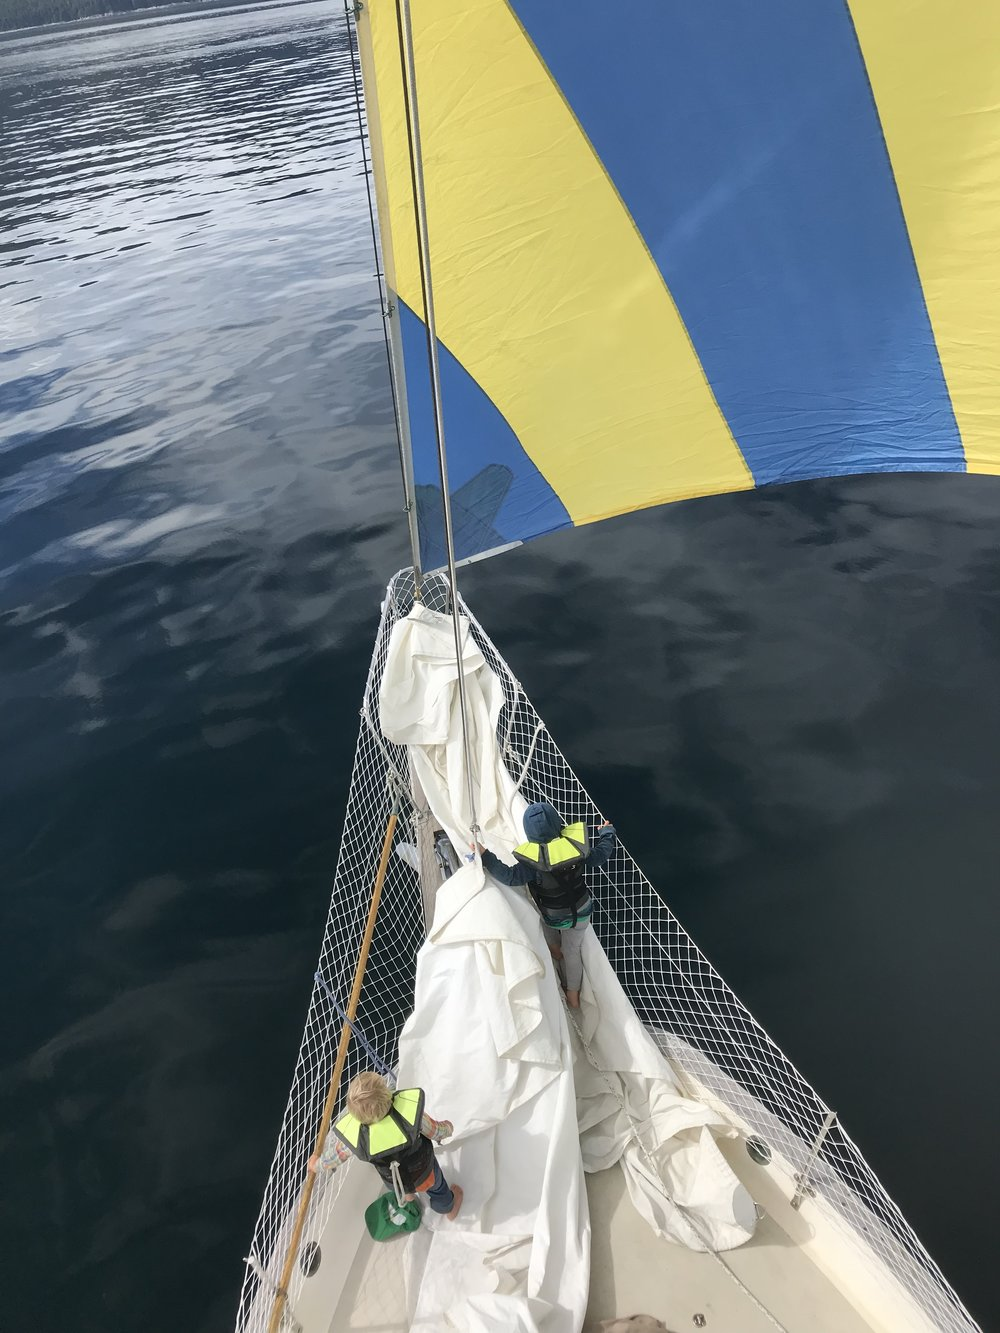 Flying our 1970s-era drifter (a light wind sail).